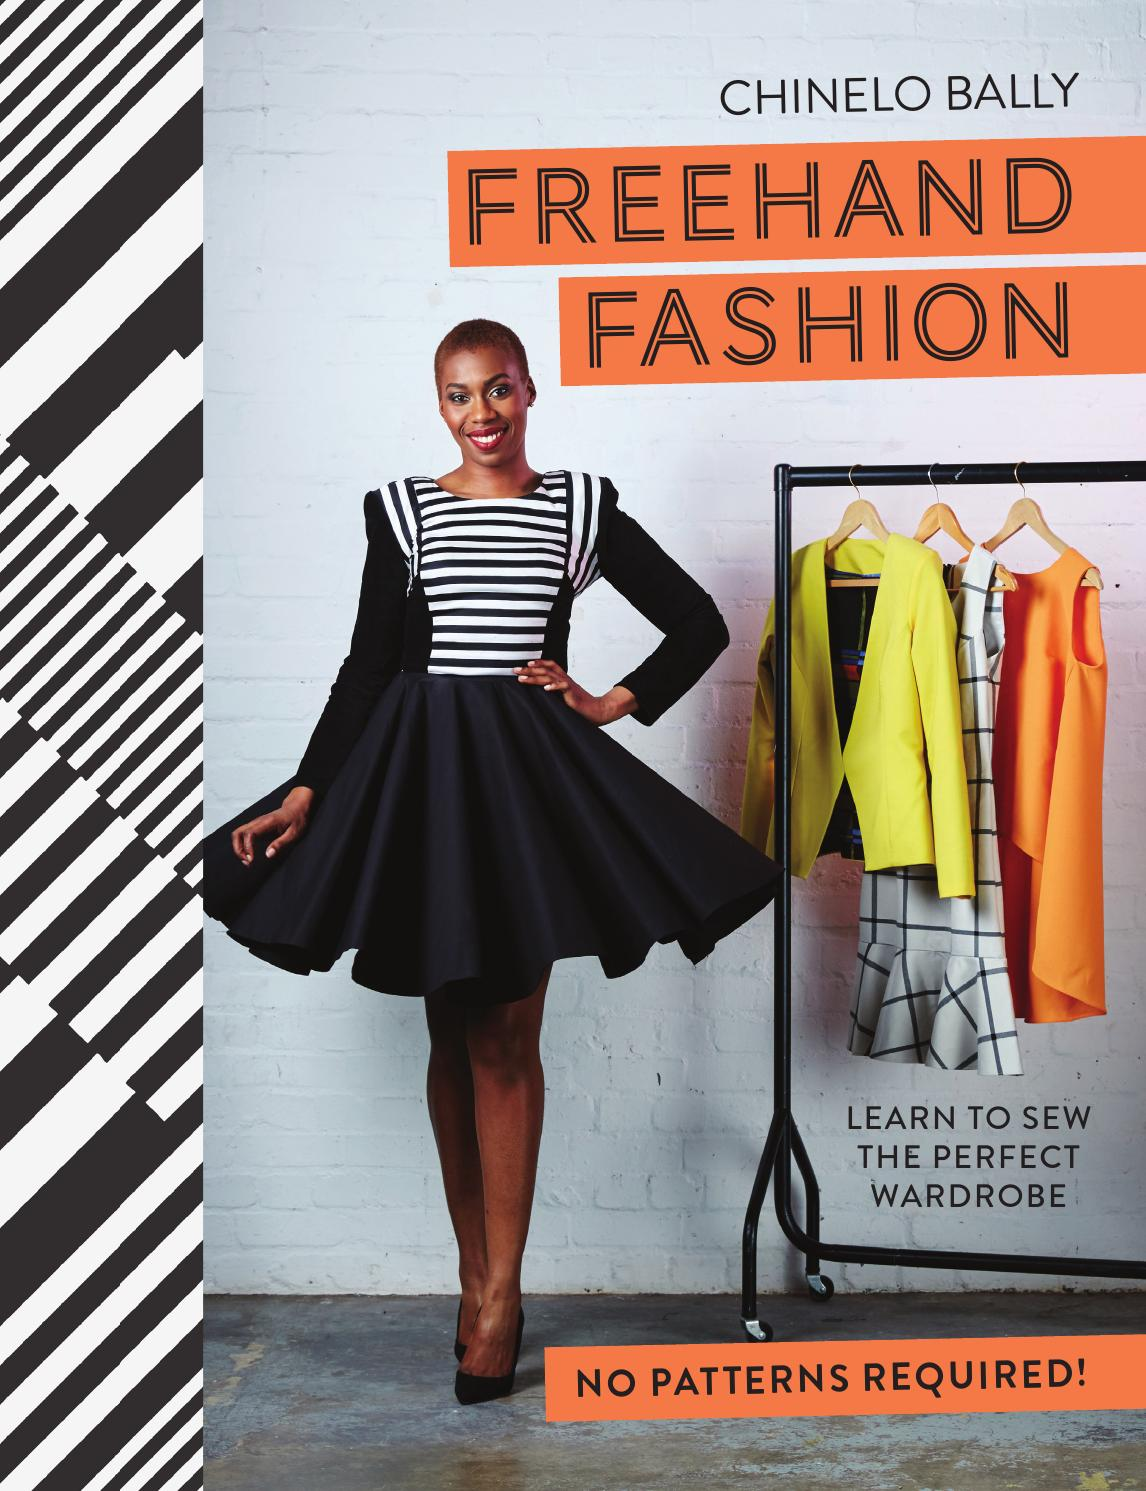 Freehand Fashion By Chinelo Bally By Pavilion Books Issuu